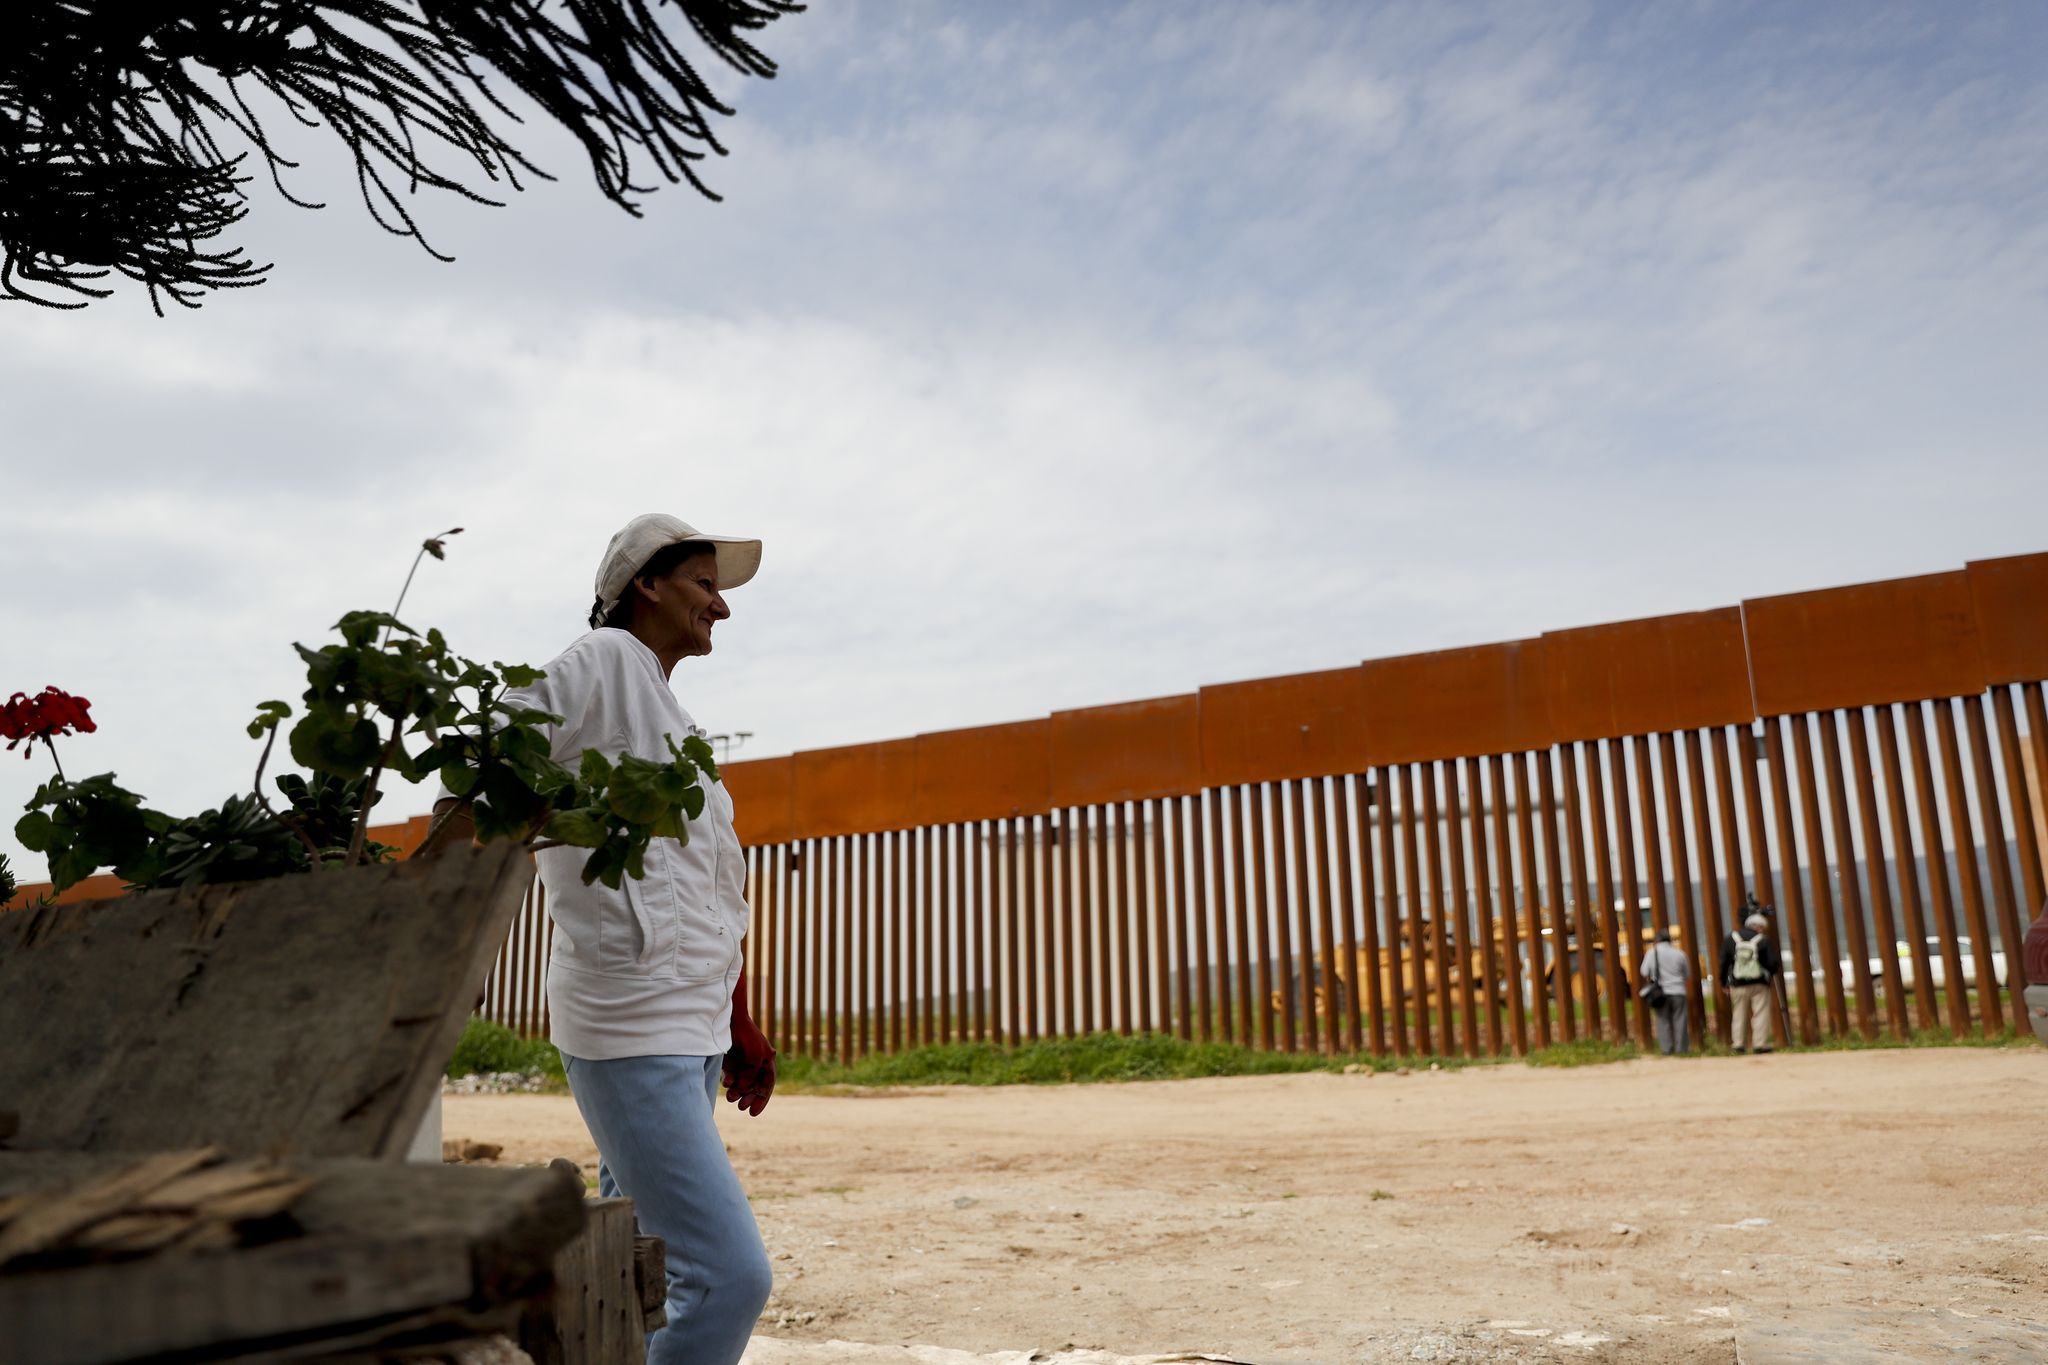 Border wall emergency spending could delay military construction projects